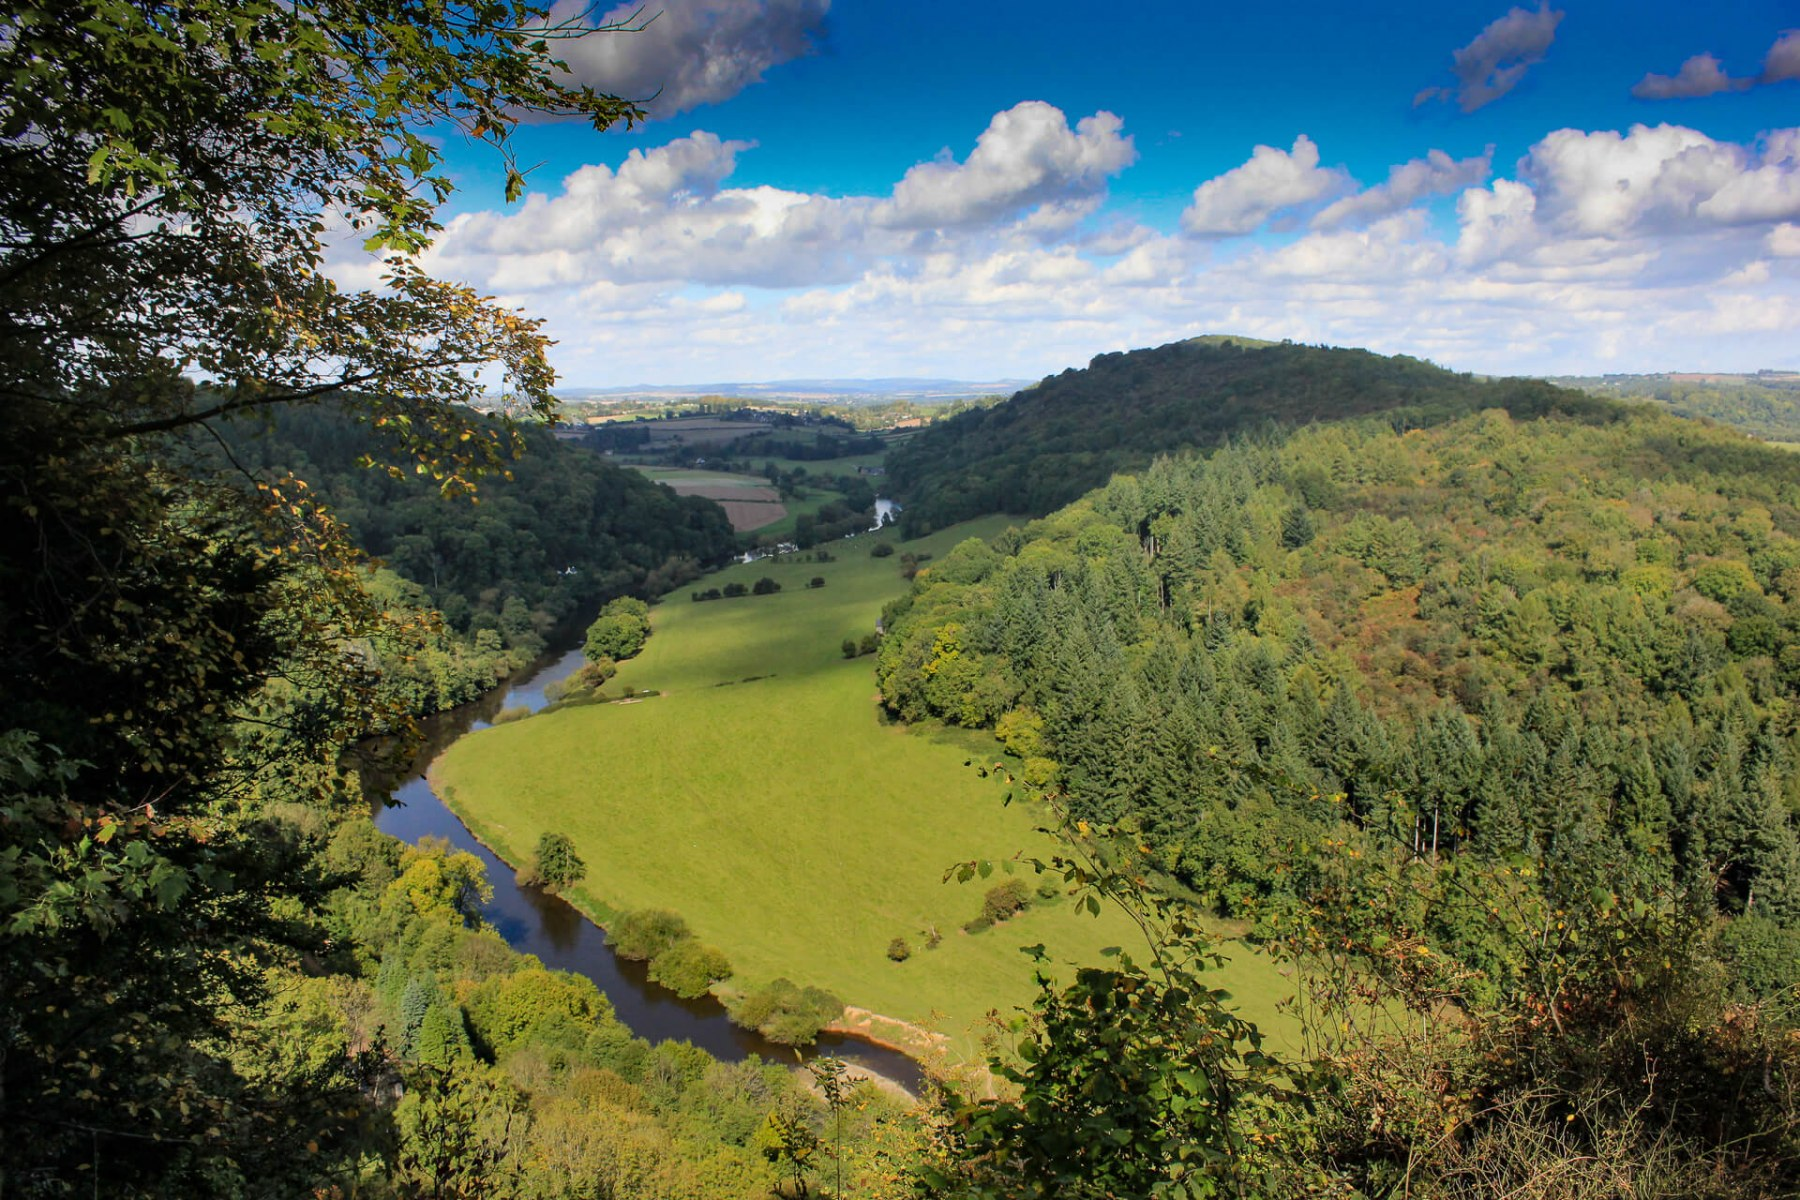 view-of-wye-river-from-second-view-point-wye-valley